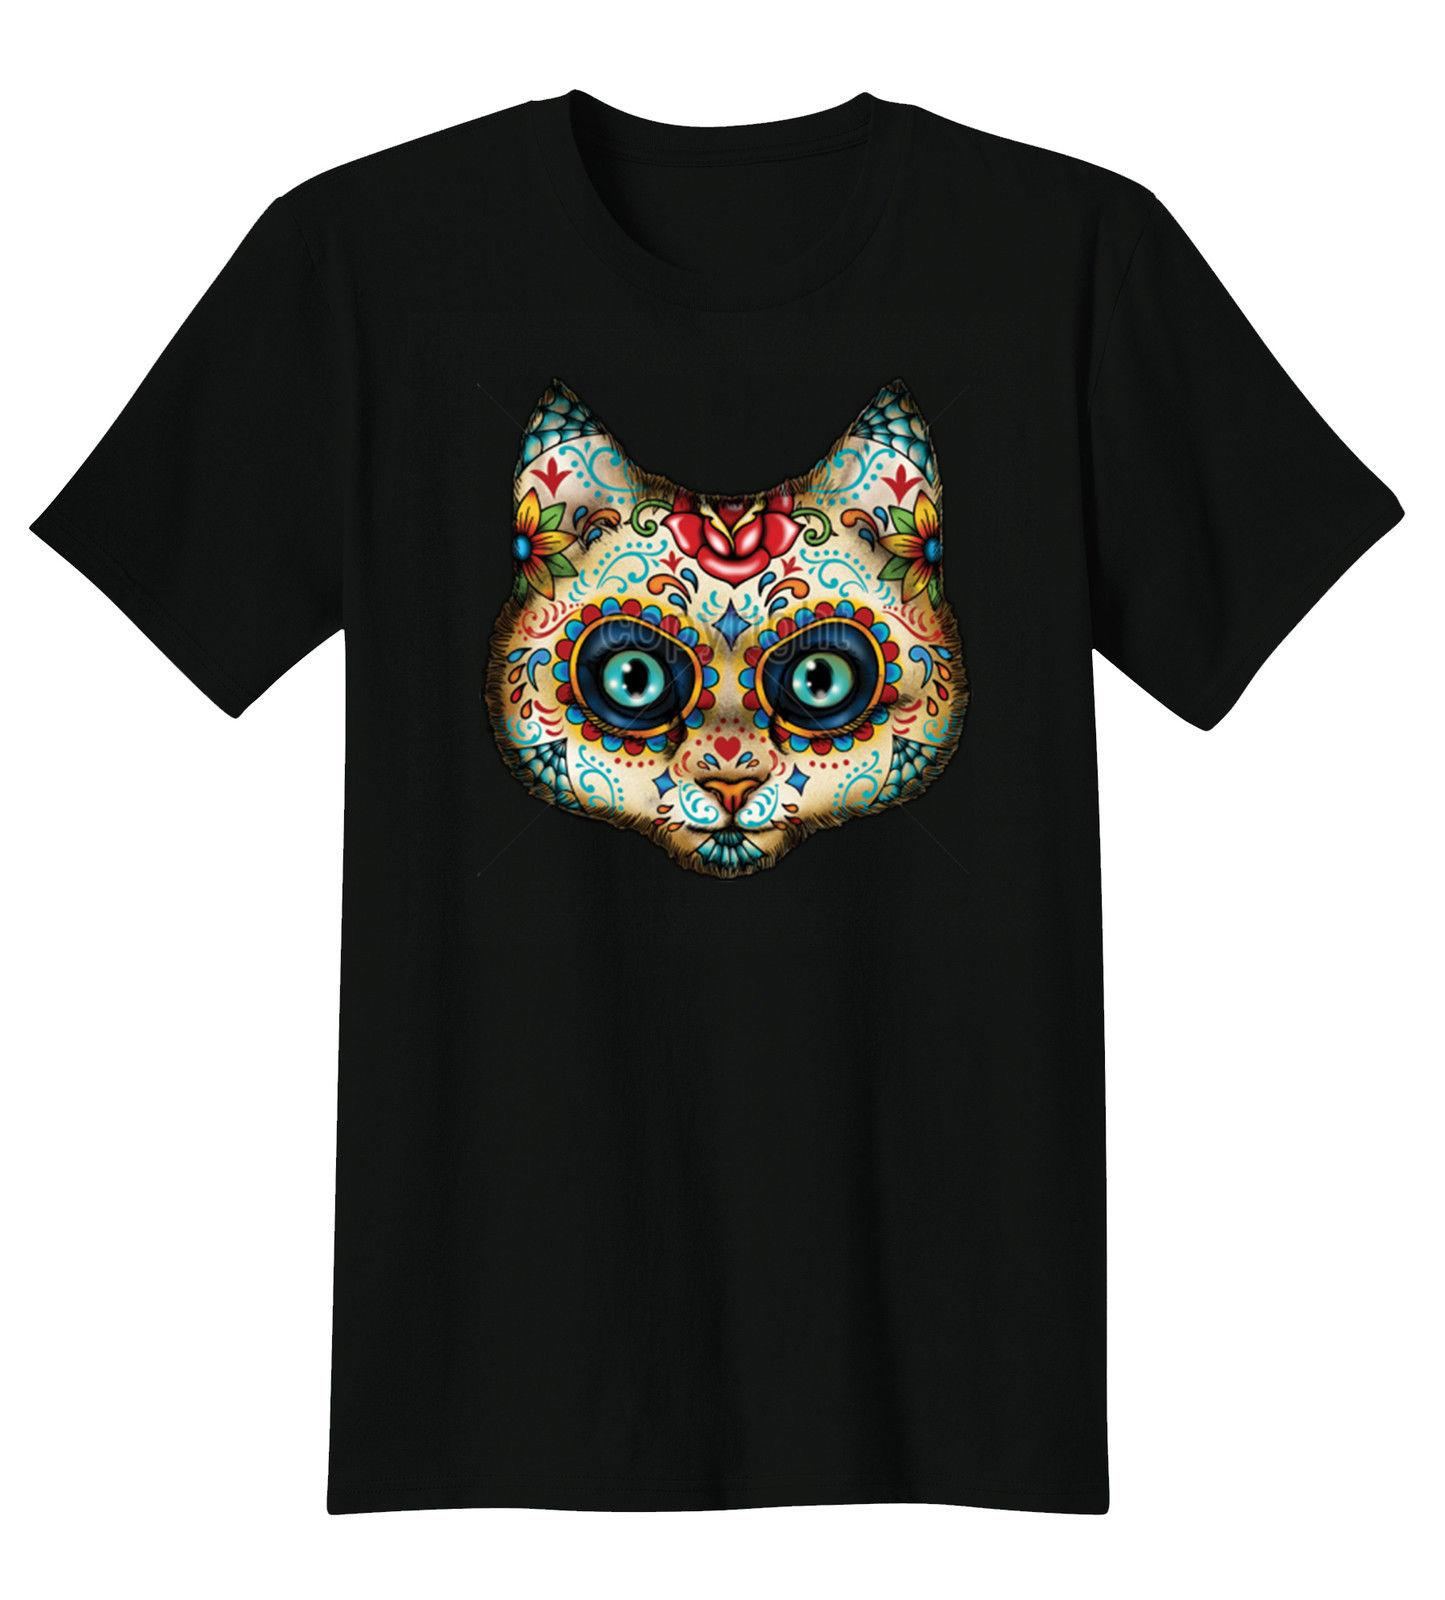 Sugar Skull Face Painted Day Of The Dead Kitty Cat T-Shirt Tee cattt windbreaker Pug tshirt Trump sweat sporter t-shirt